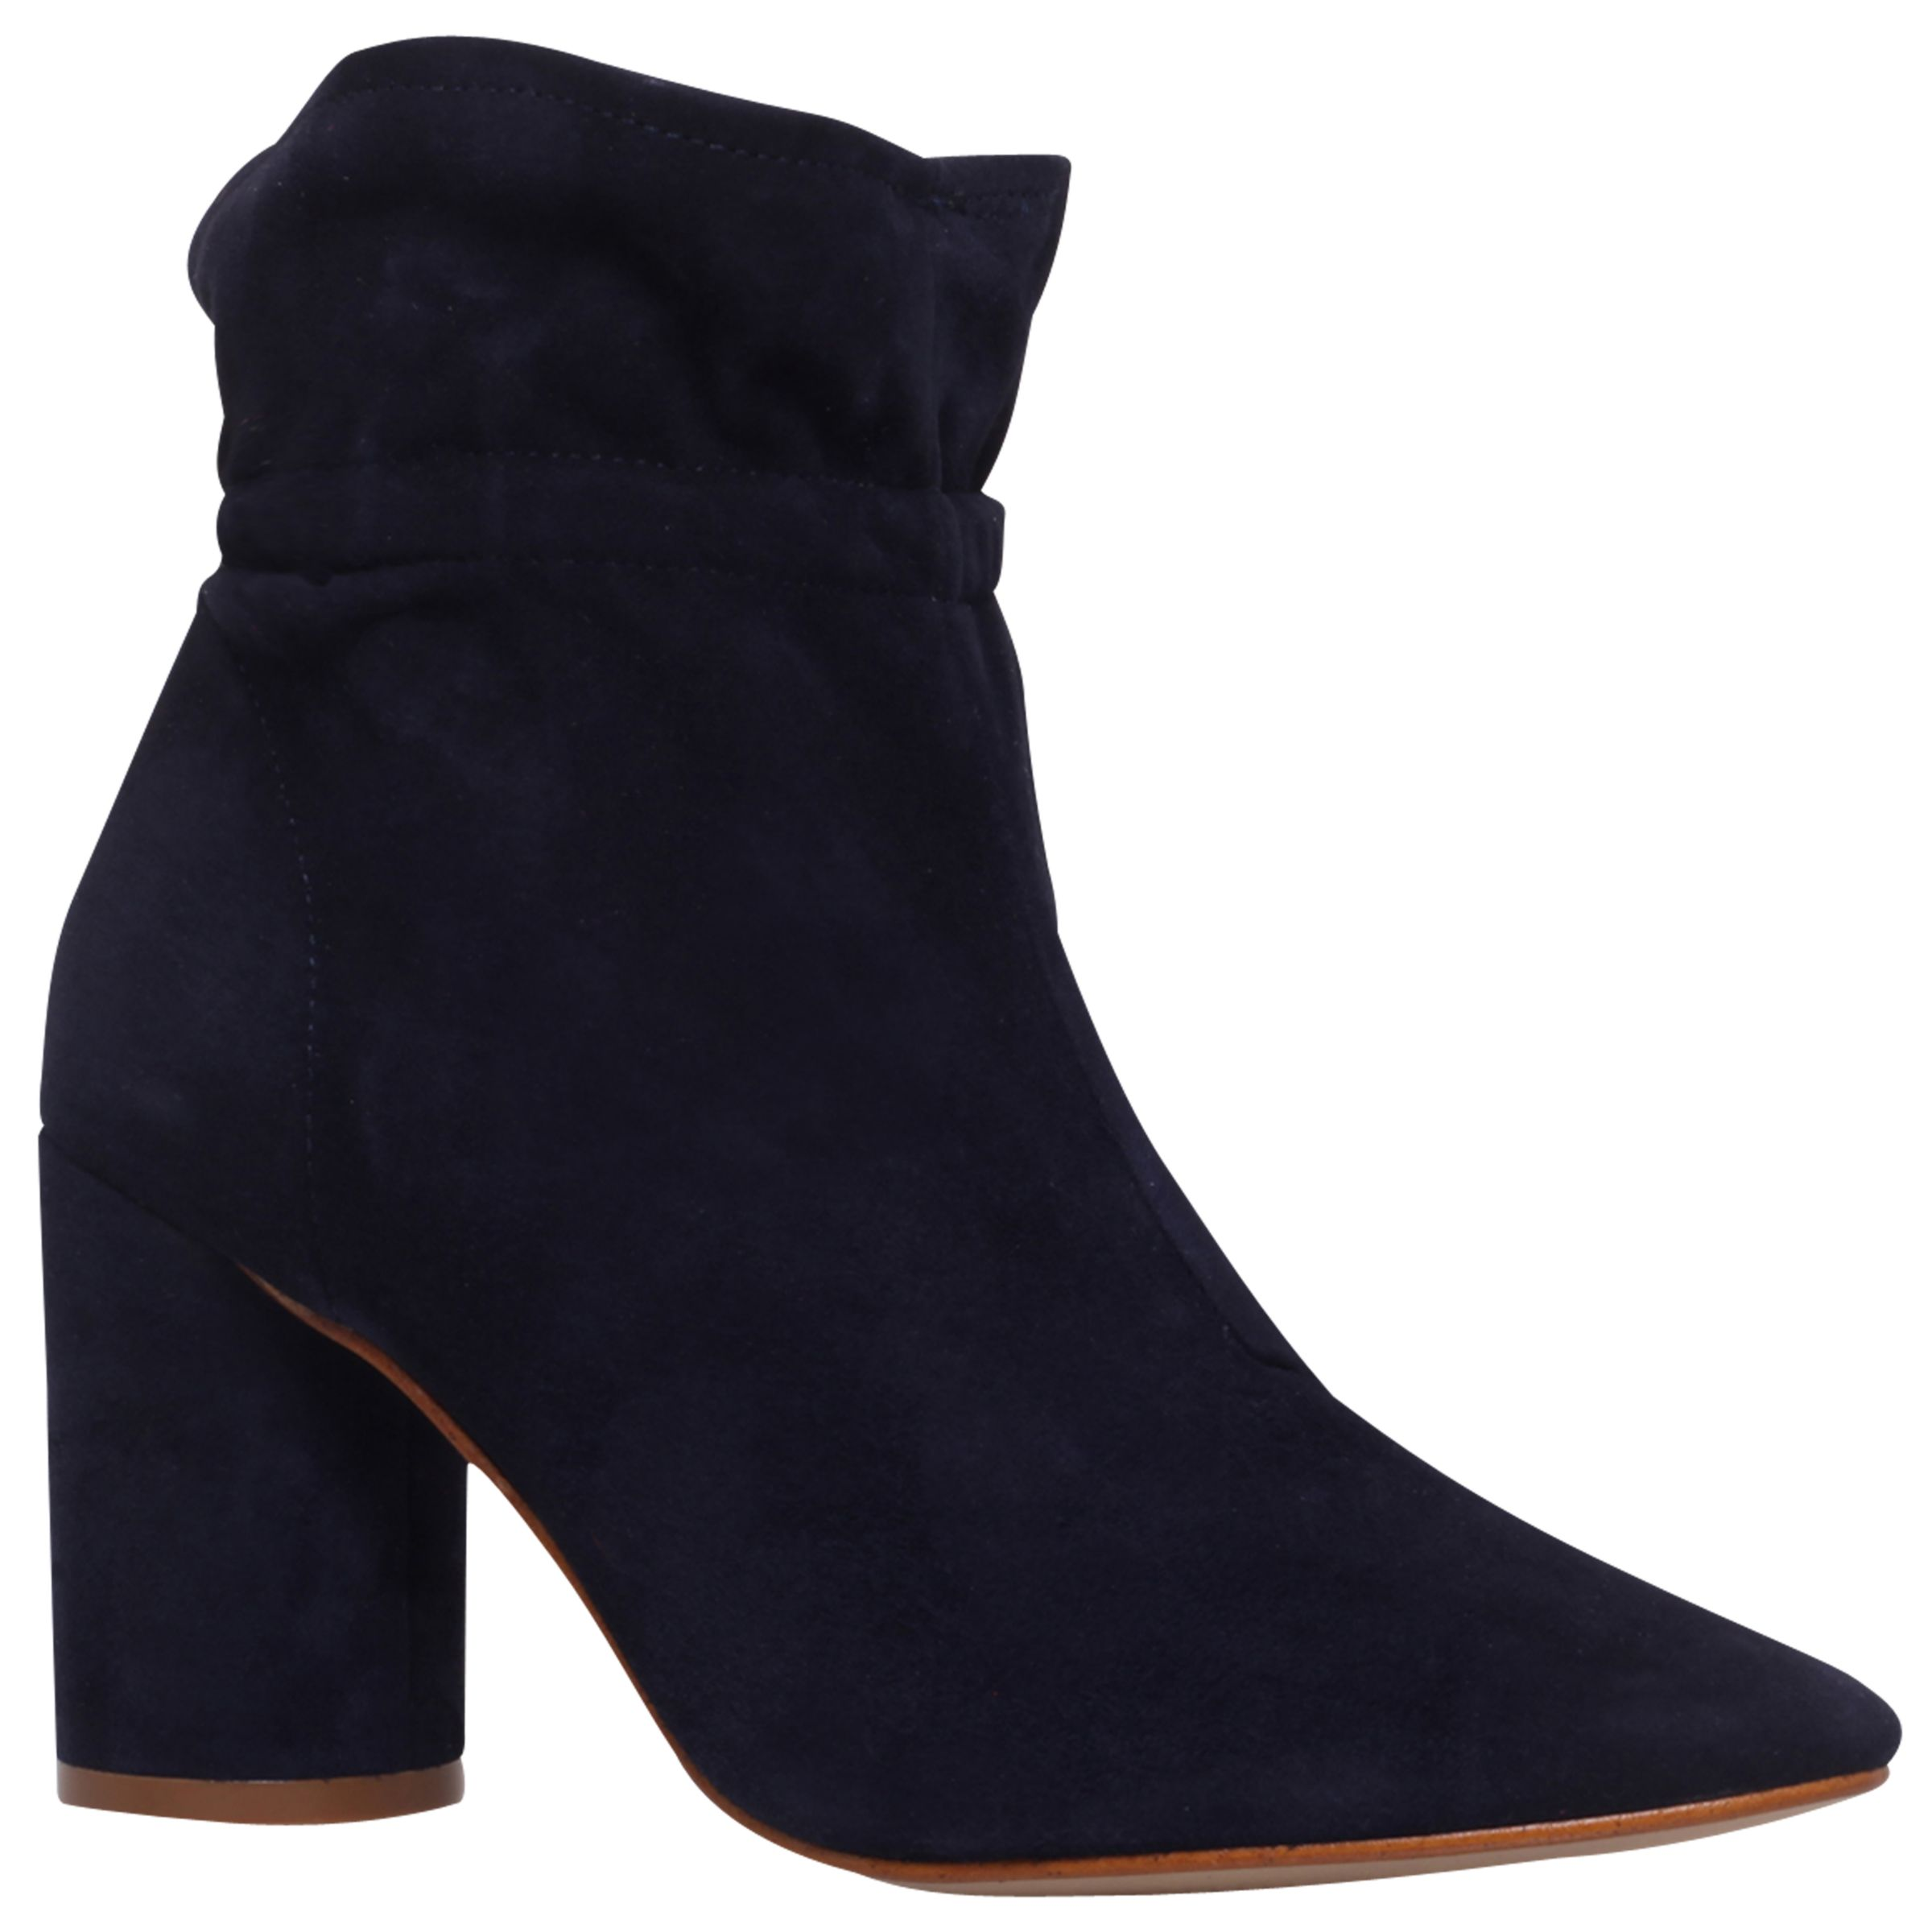 KG by Kurt Geiger KG by Kurt Geiger Raglan Block Heeled Ankle Boots, Navy